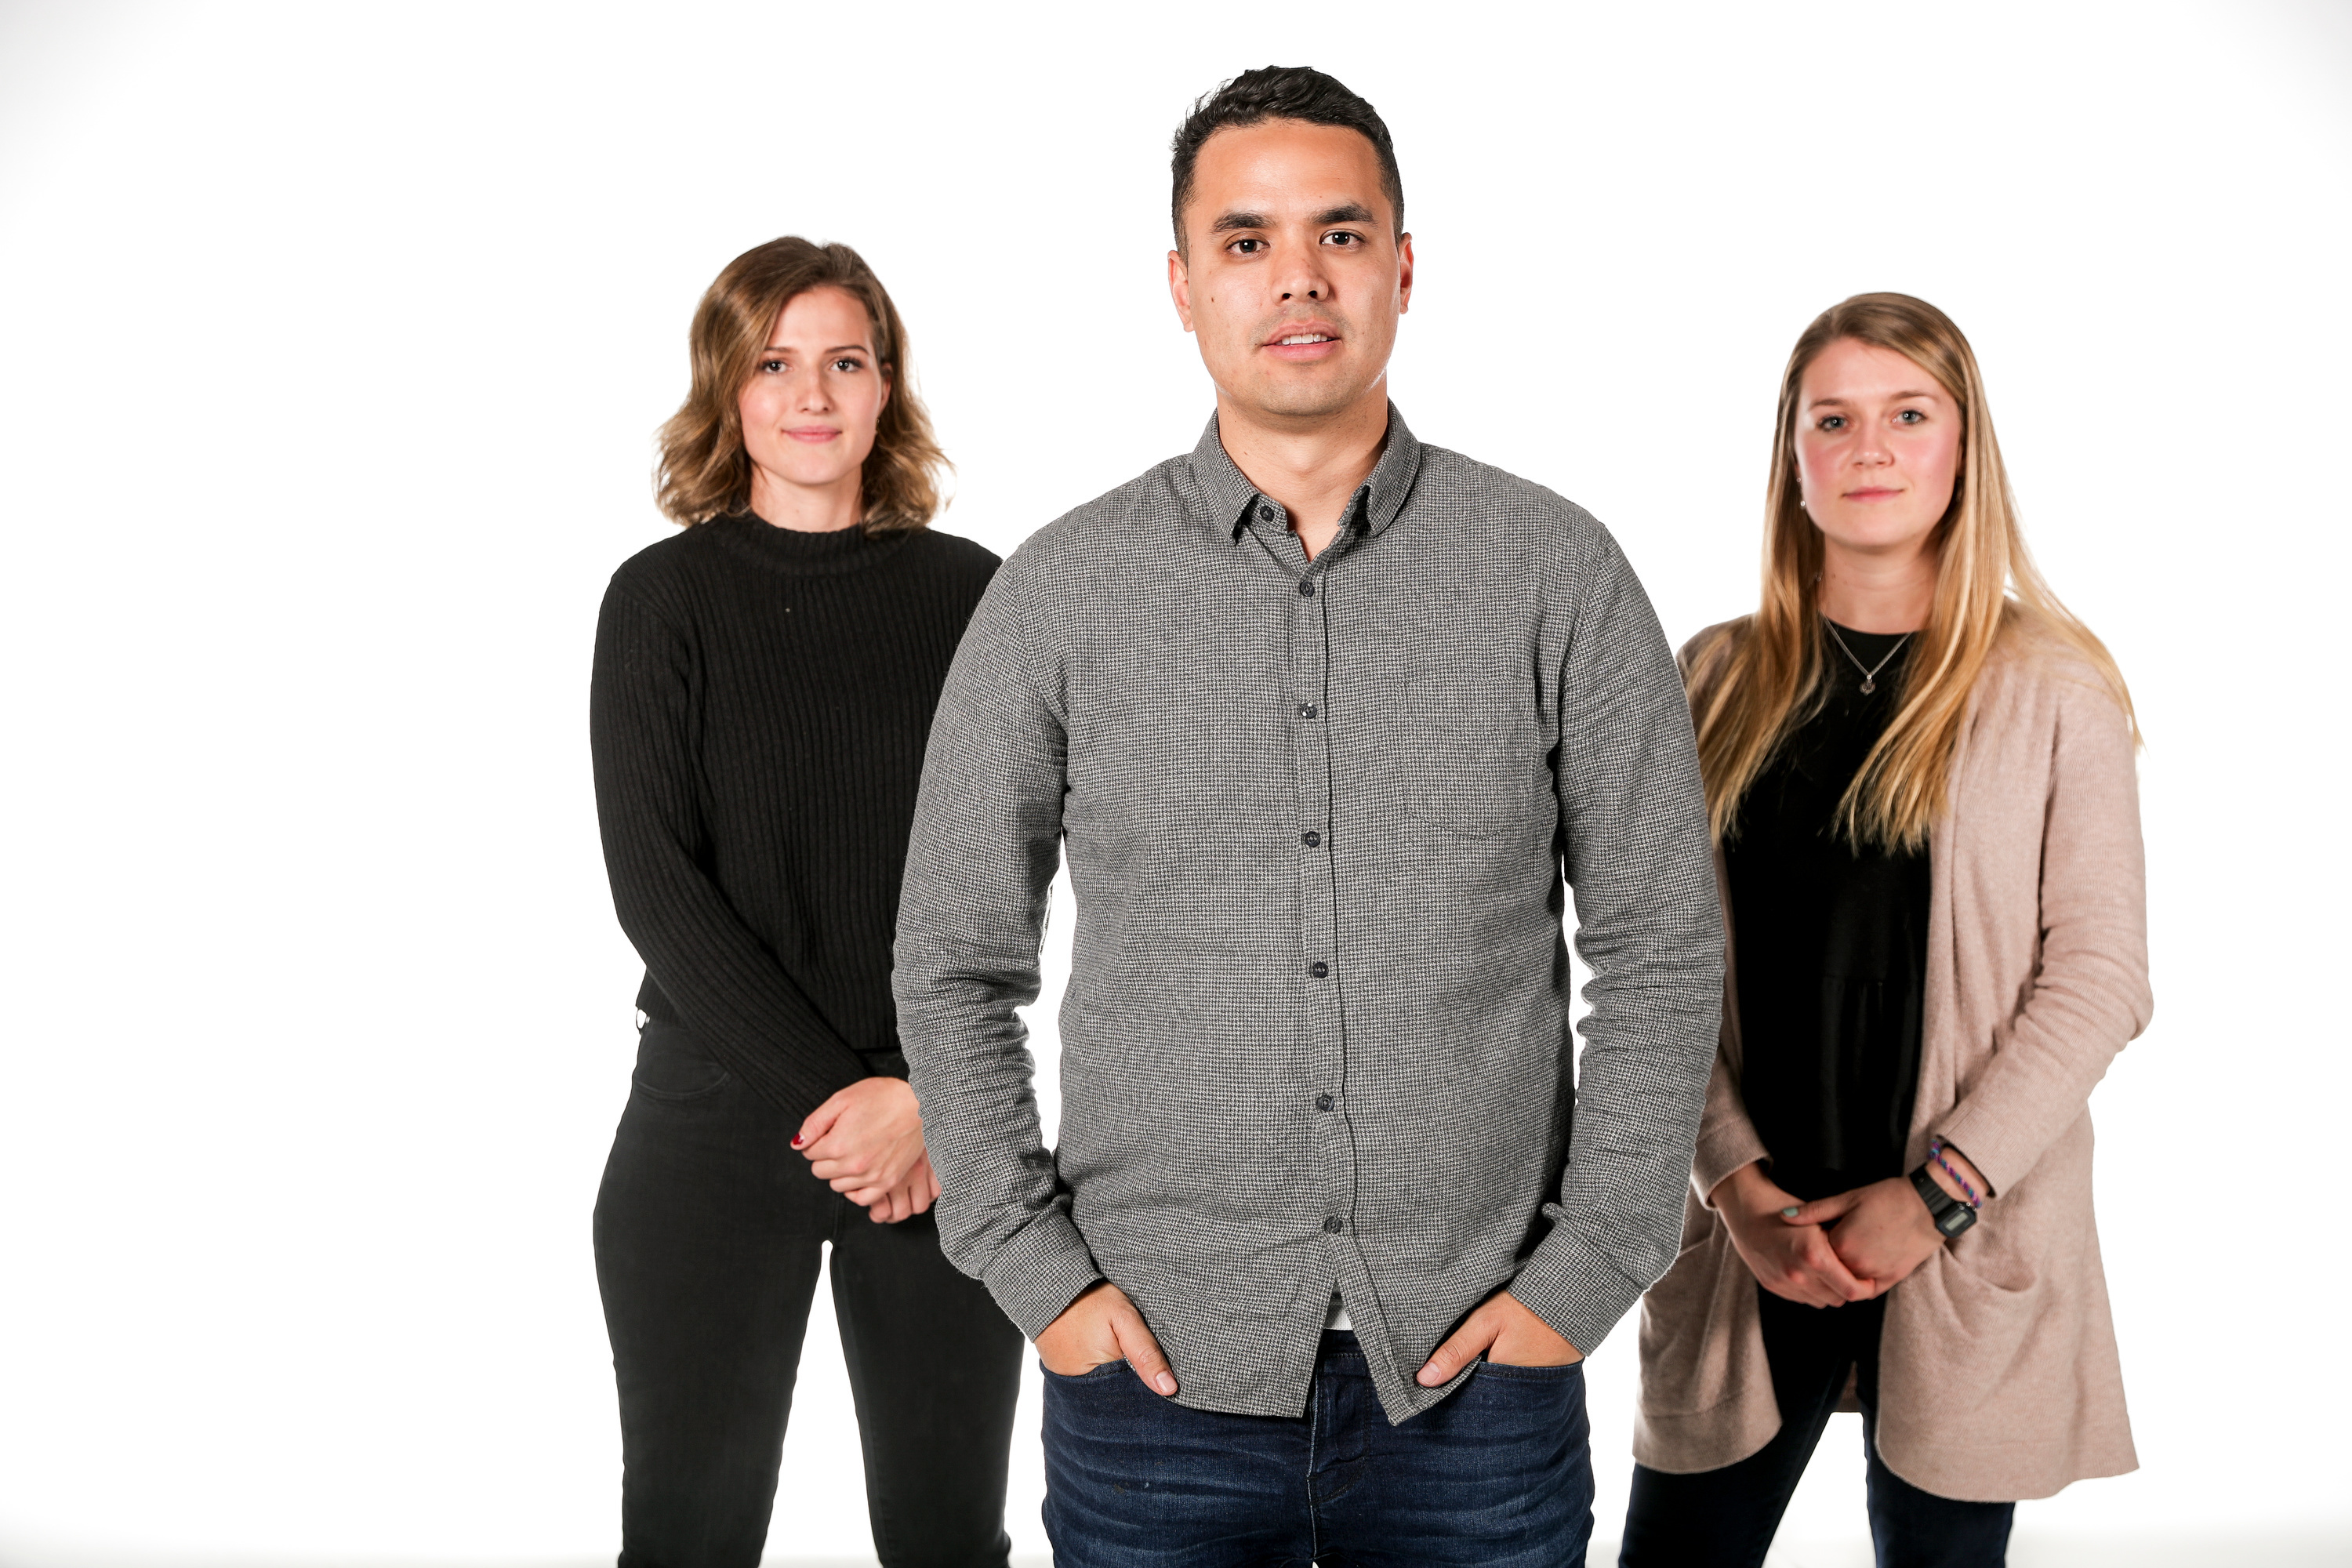 Marissa Folland, 20, Maurice Melligan, 28, and Suzy Thornock, 20, left to right, pose for a photo at the Deseret News in Salt Lake City on Tuesday, Oct. 9, 2018.